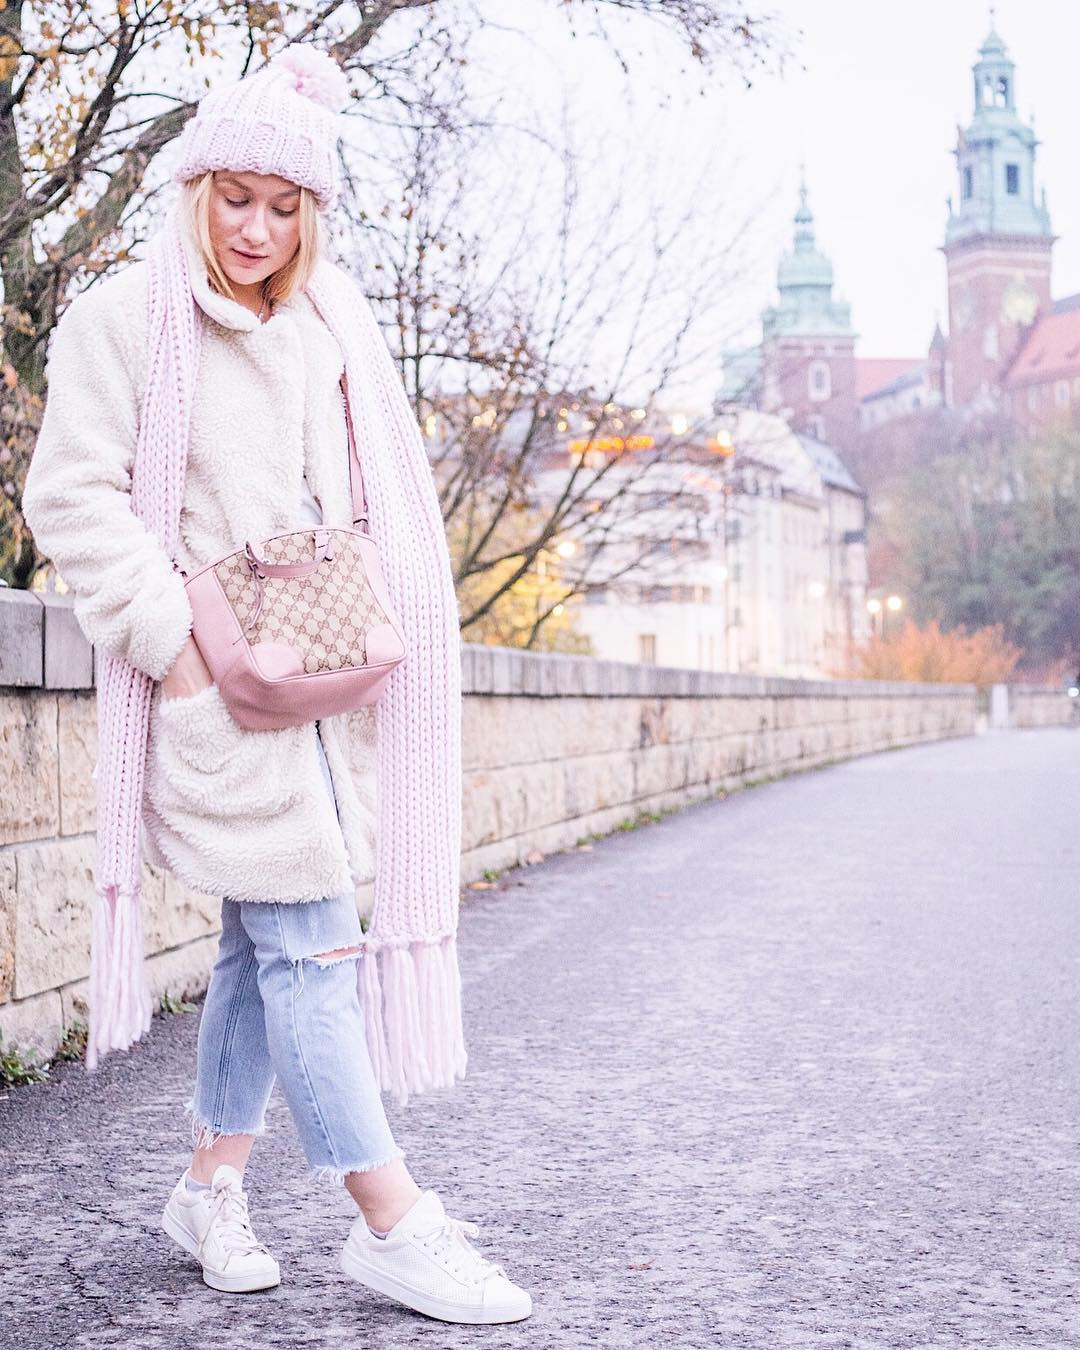 Pretty Pink Teddy Bear Coat With Ripped Jeans And Knitted Scarf And Cap